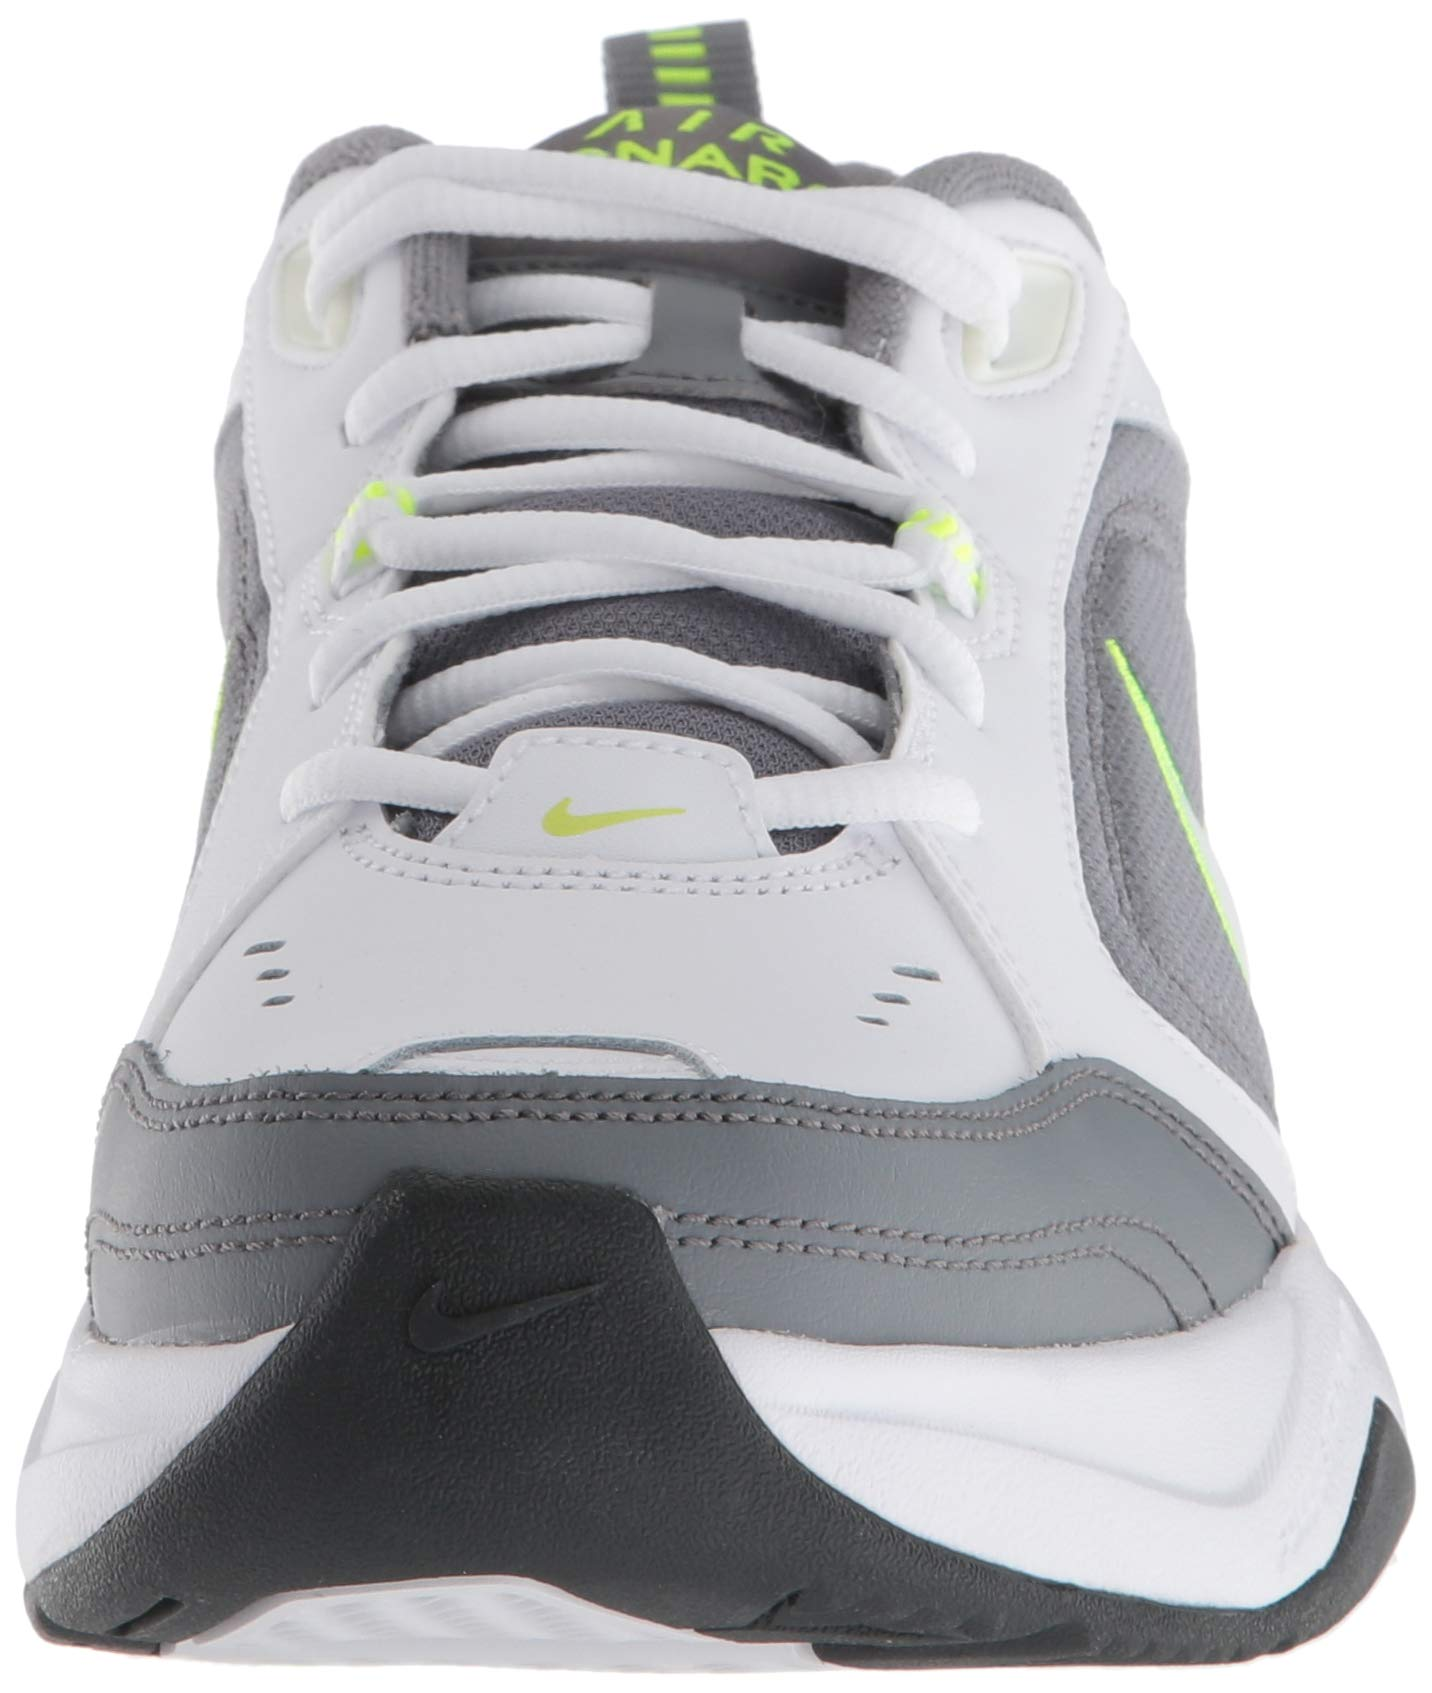 Nike Men's Air Monarch IV Cross Trainer, White-Cool Grey-Anthracite, 6.5 Regular US by Nike (Image #4)